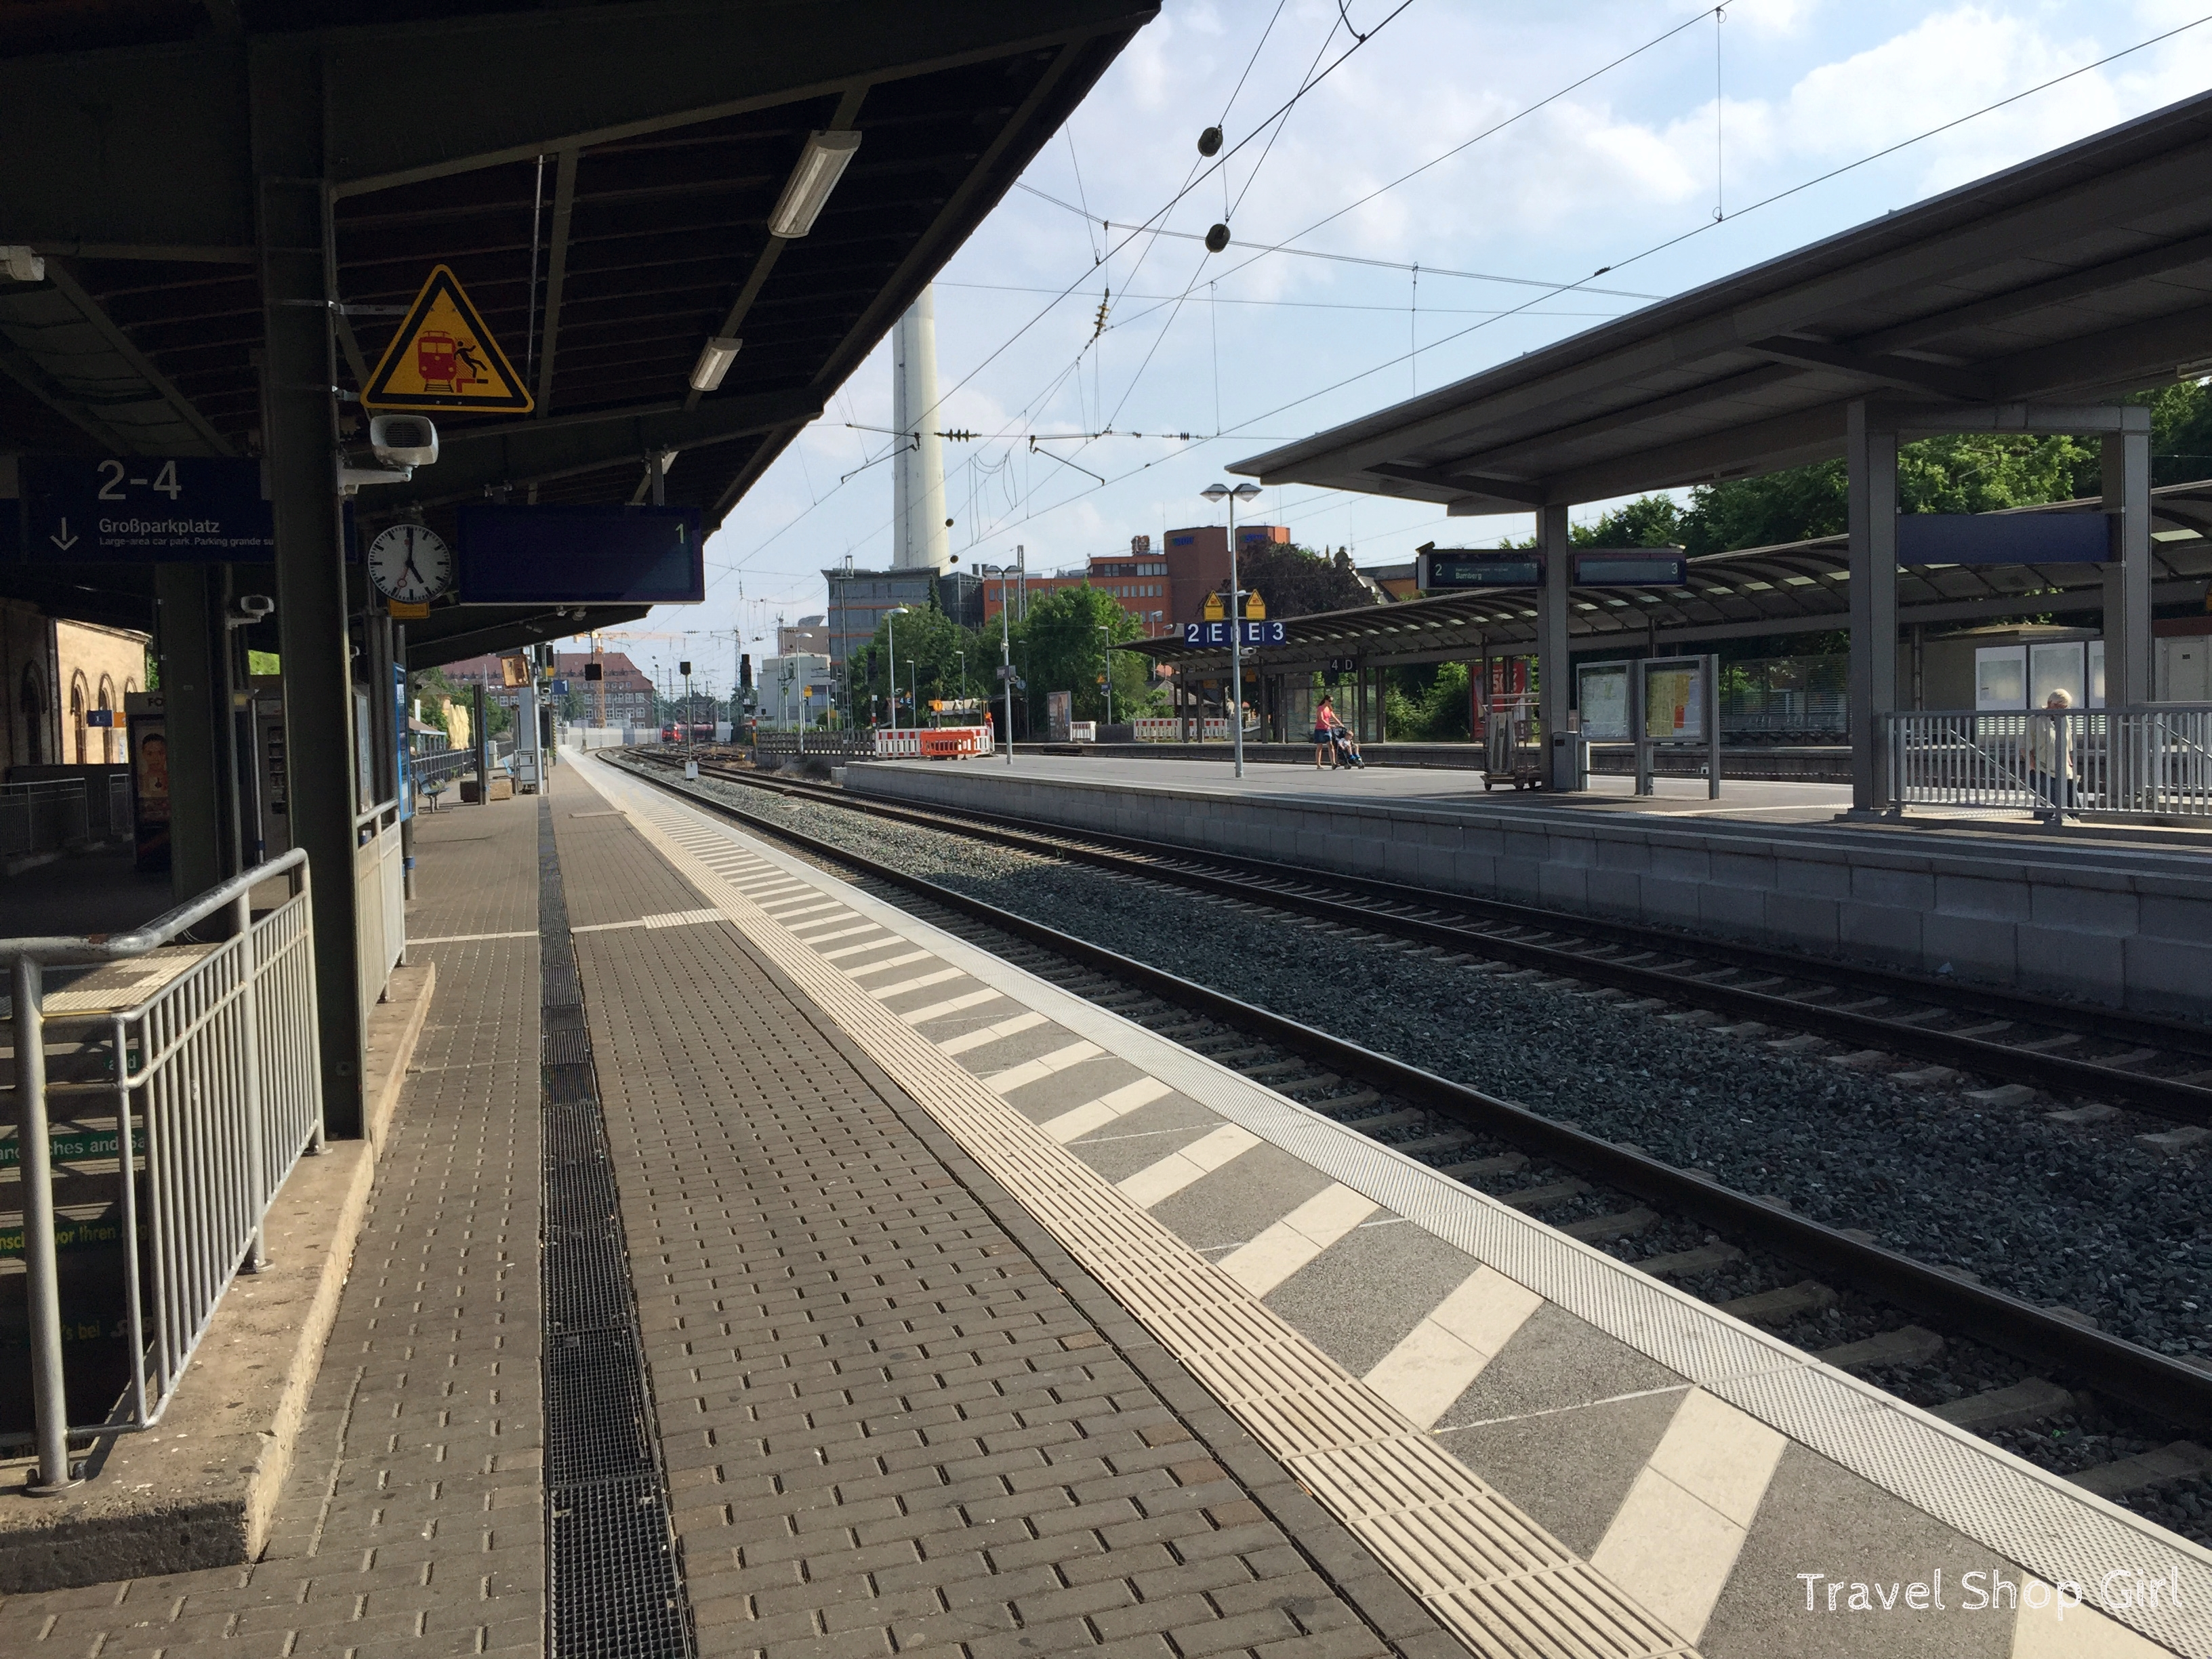 Taking The Train From Nuremberg To Erlangen Germany Travel Shop Girl